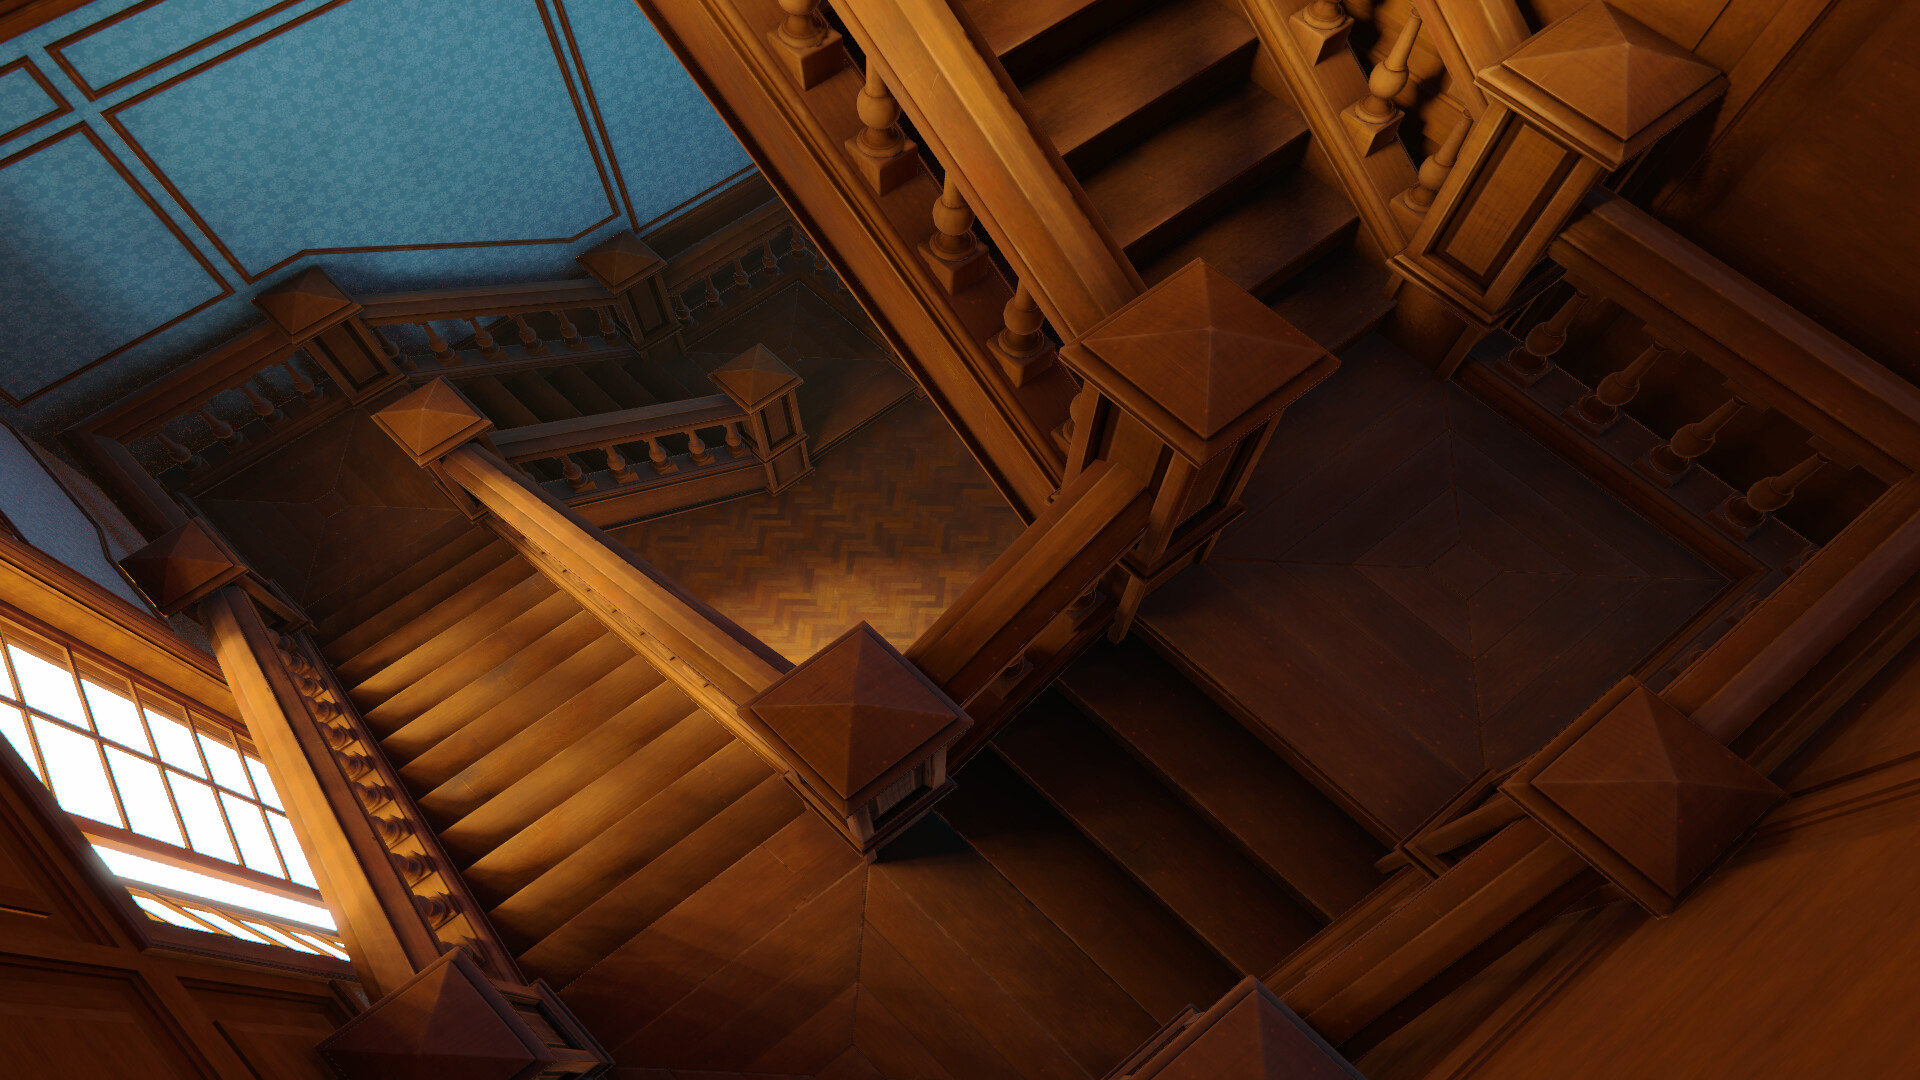 I hope you like it this basically my first personal environment model the main idea was just create a modular stairs for practice and end up with an entire interior